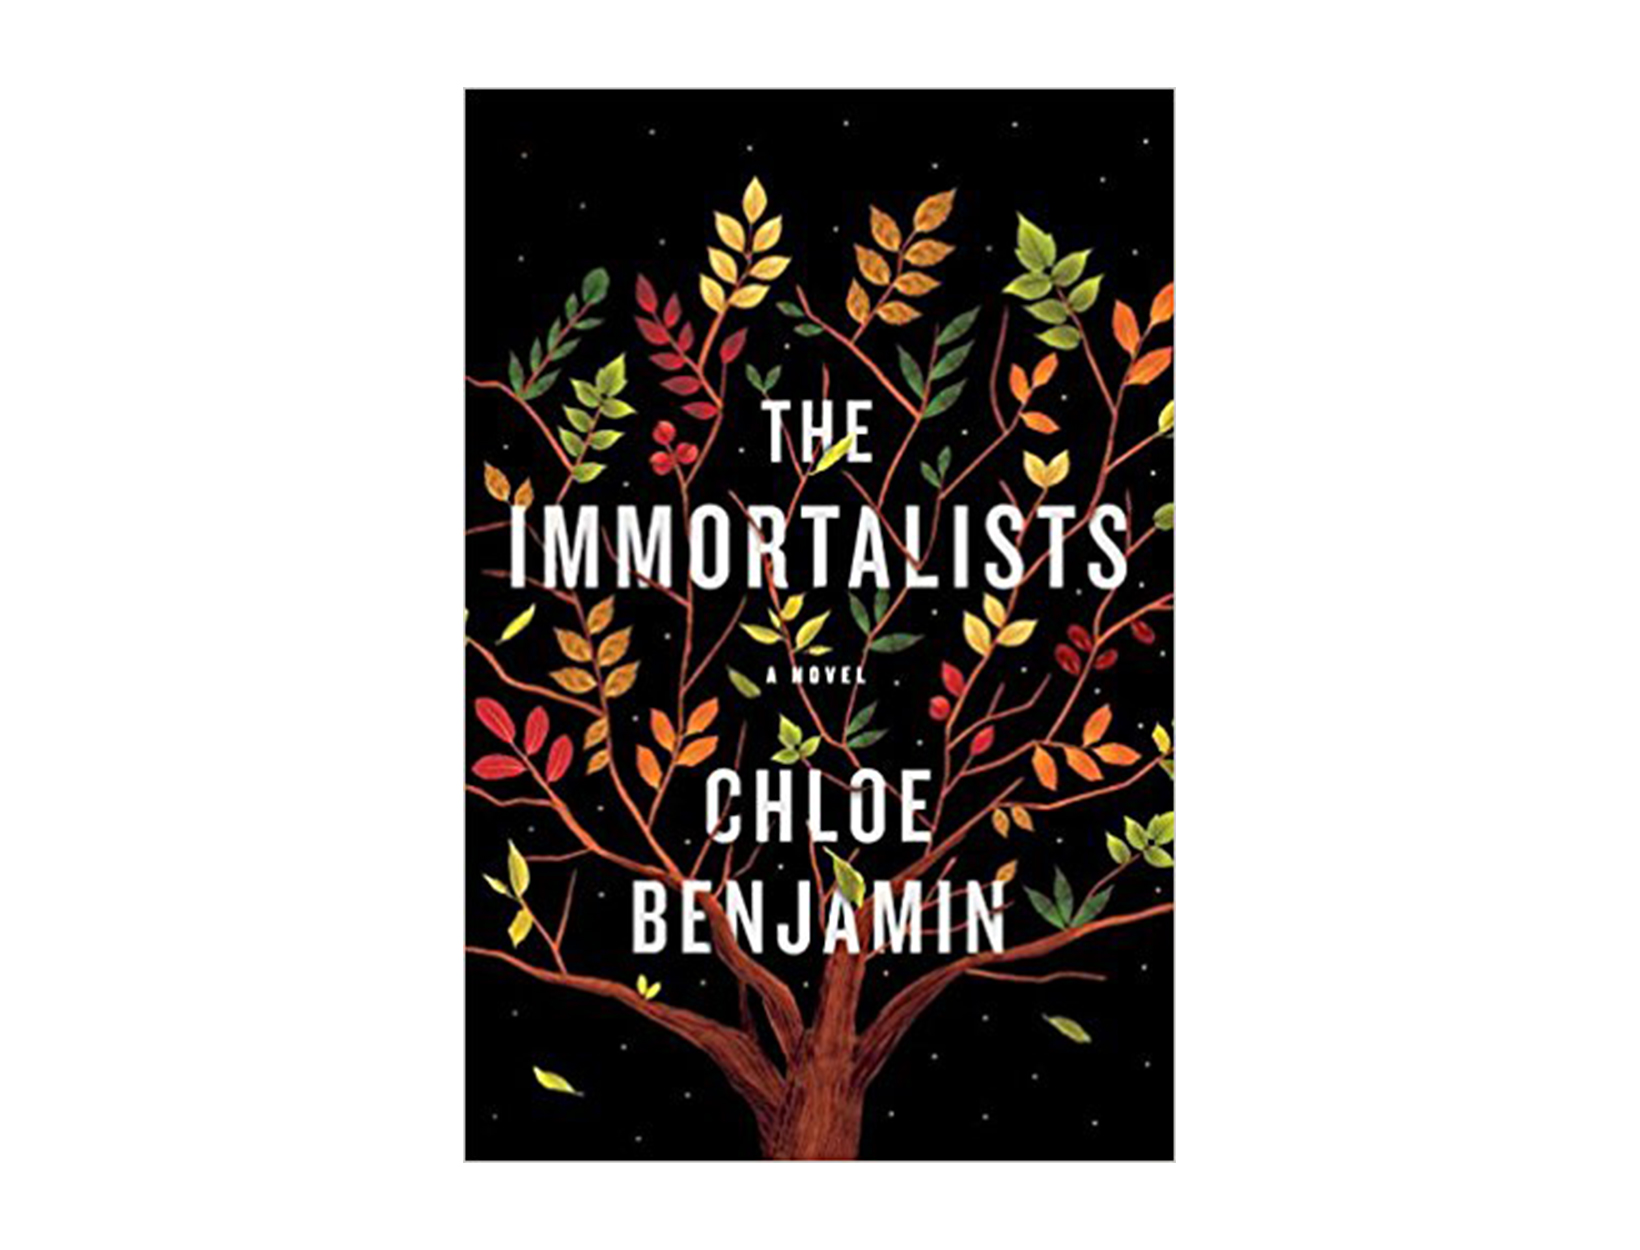 The Immortalists by Chloe Benjamin